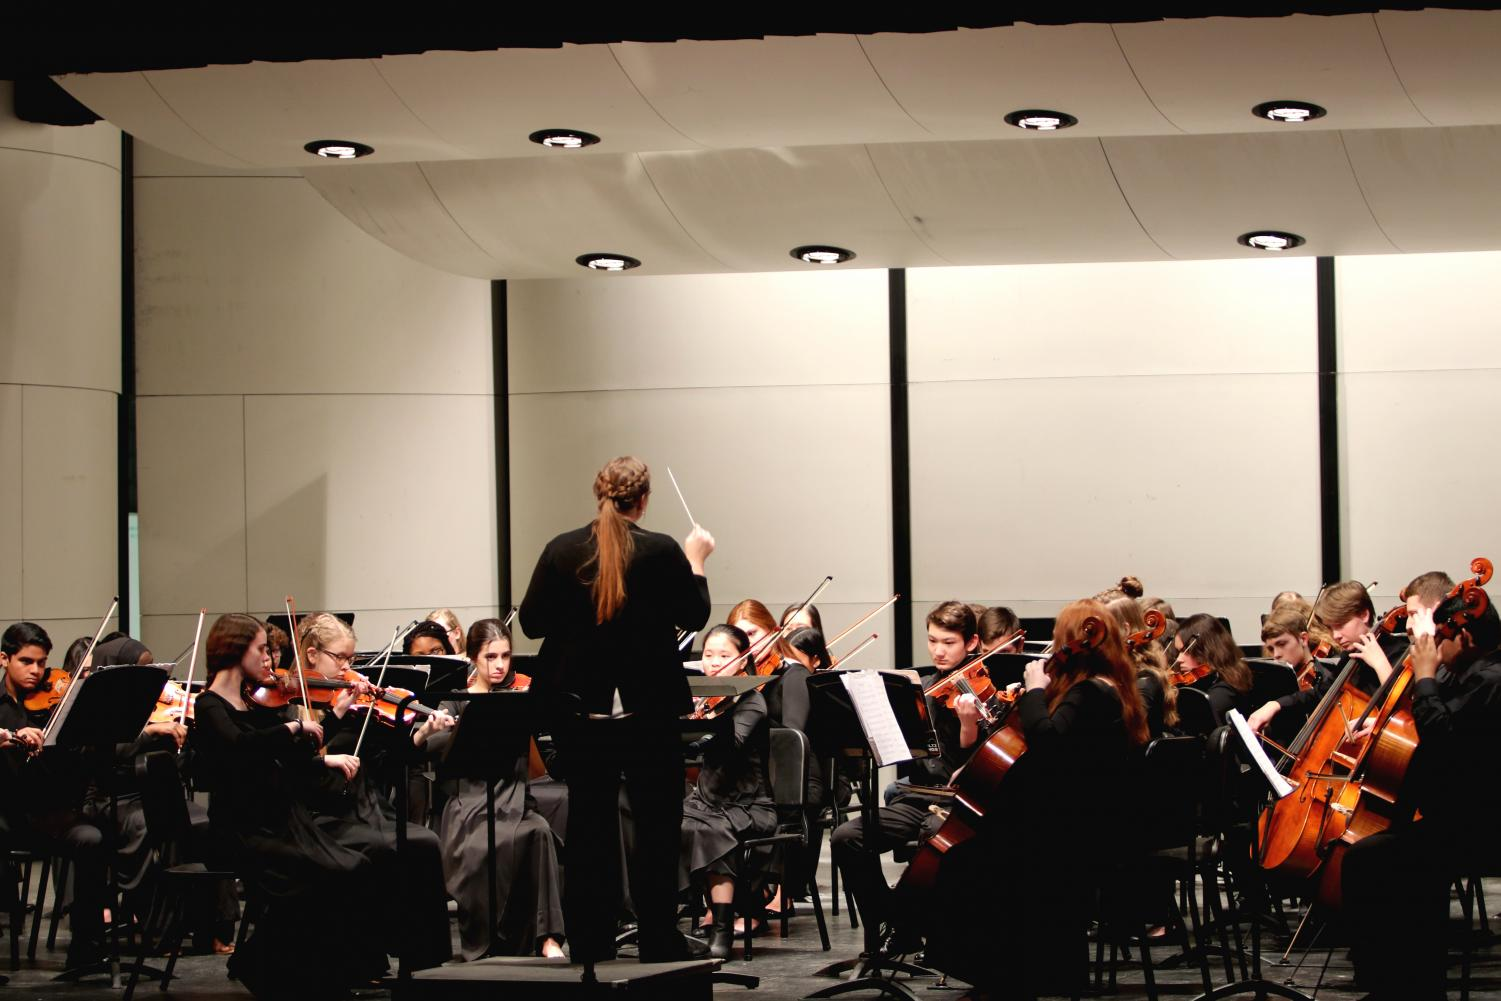 Mrs.+Stucky+conducts+the++Concert+Orchestra+during+their+second+piece.+